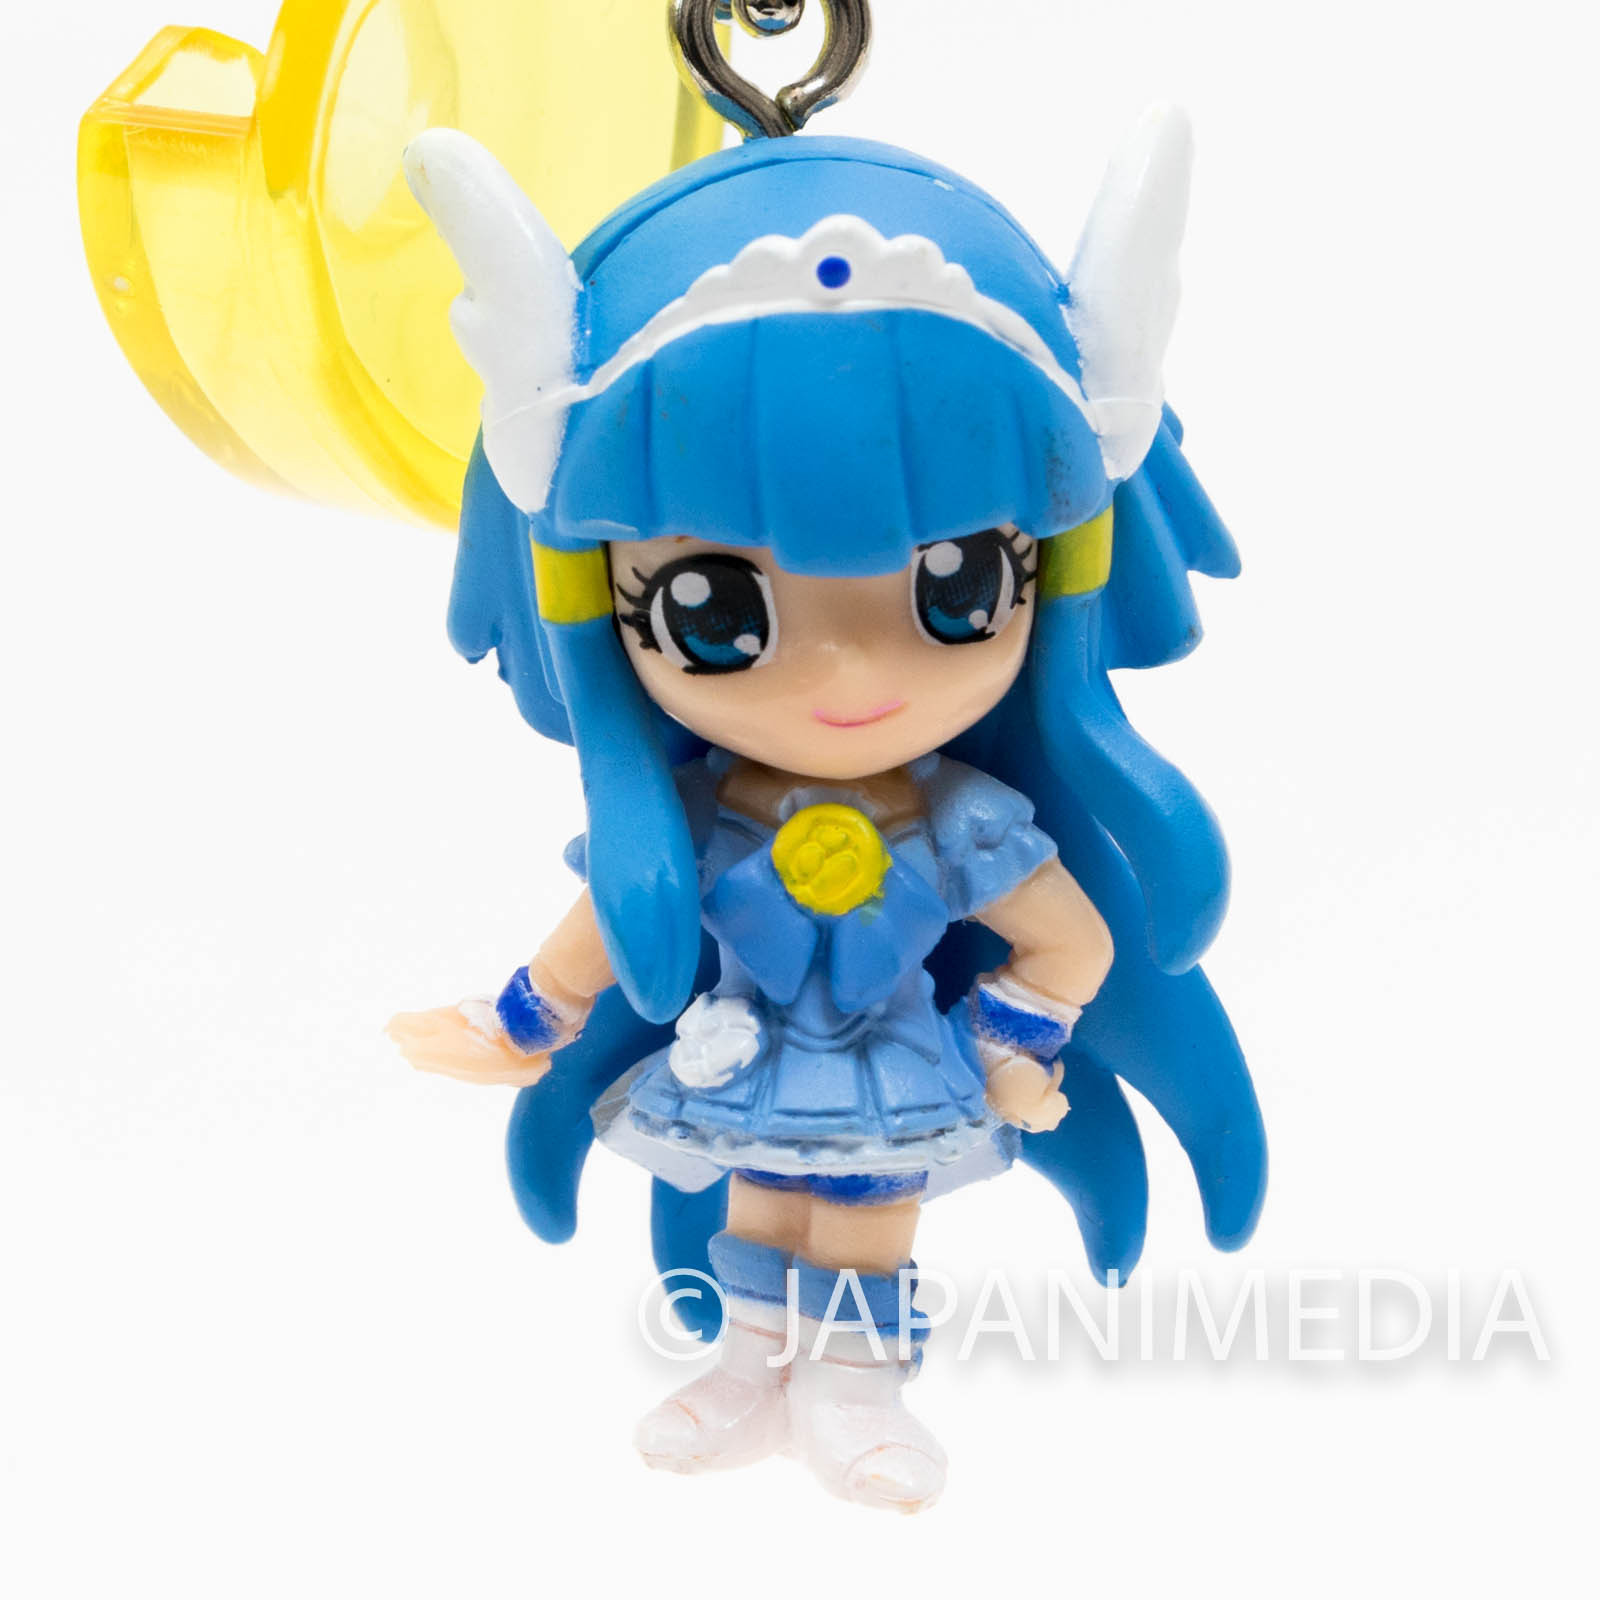 Smile PreCure! Cure Beauty Smile PreCure! Swing! Mascot Figure Ball Keychain JAPAN ANIME